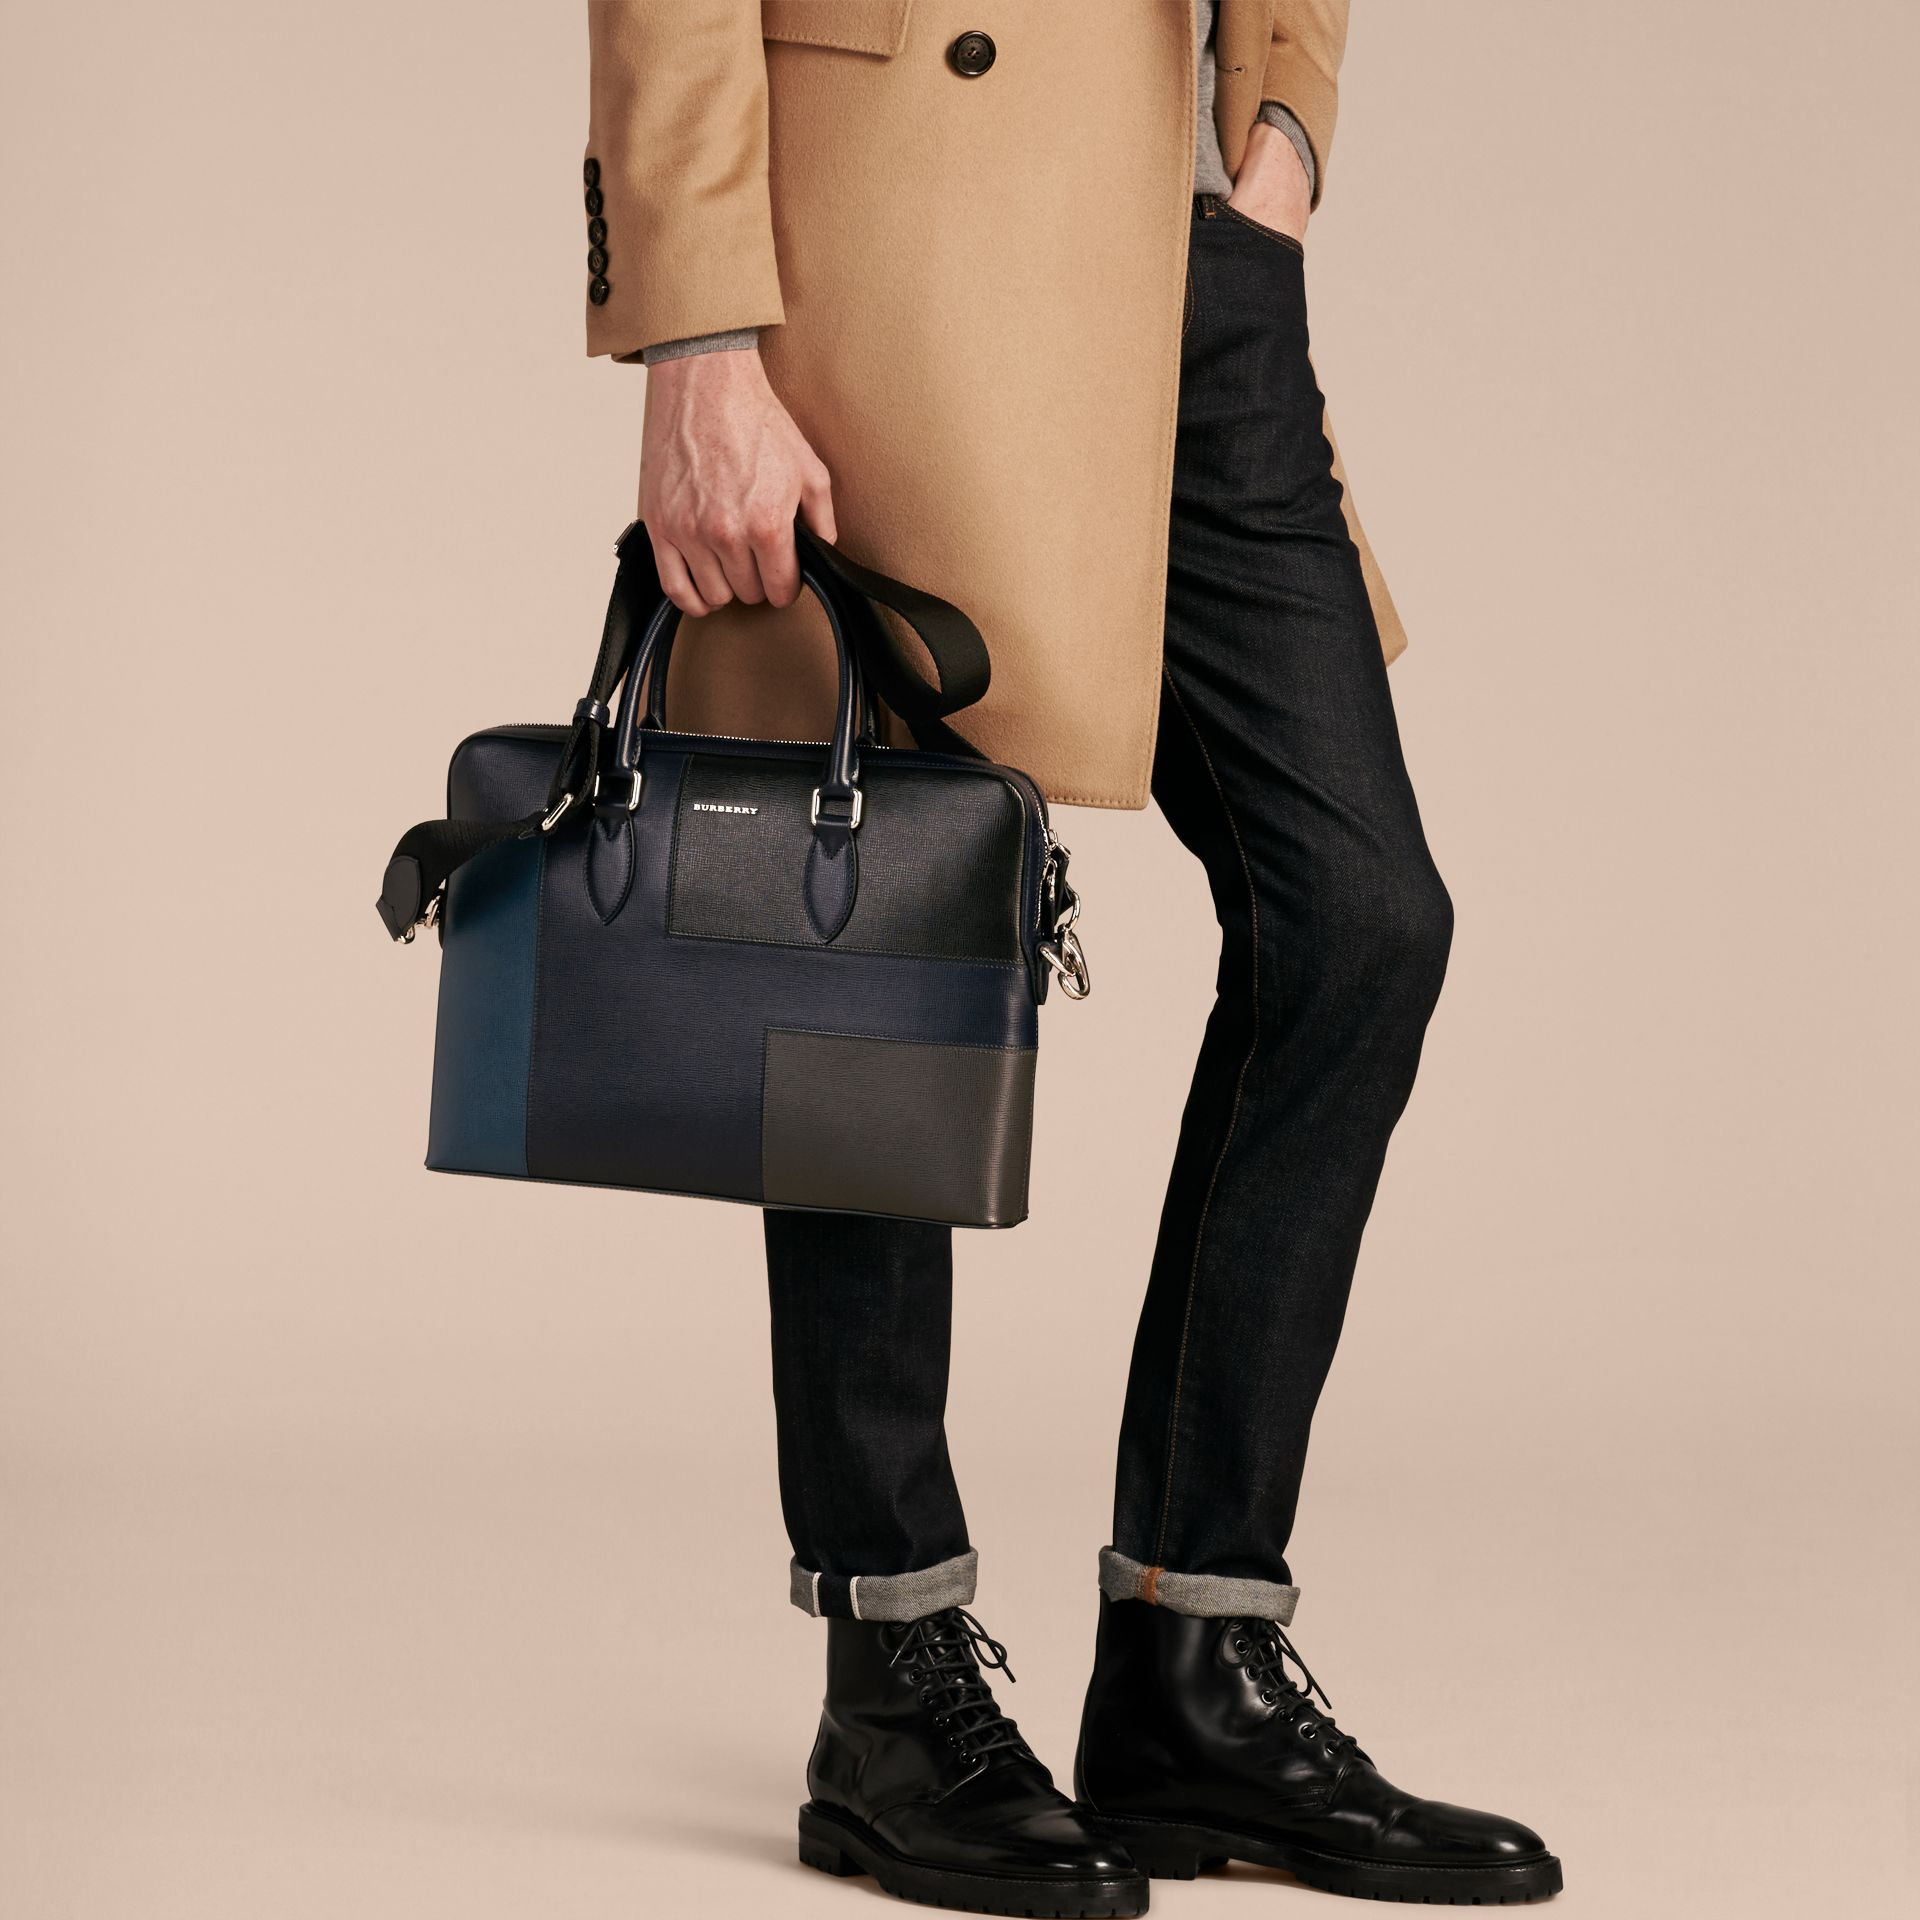 Dark navy The Slim Barrow Bag in Patchwork London Leather Dark Navy - gallery image 3